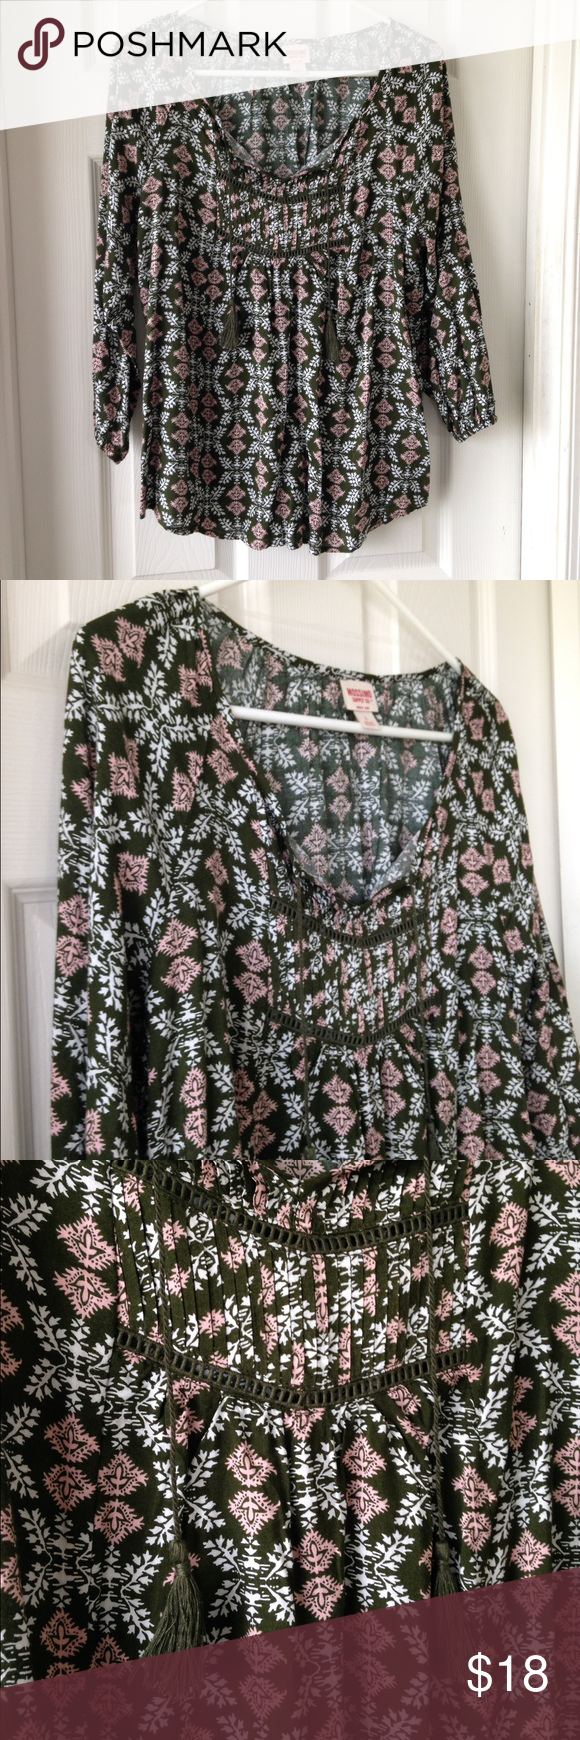 """Olive & Pink Tassels Top Olive green, pink, and white. Lightweight. Worn once - no stains or holes. Olive green Tassels. 100% rayon. 3/4 sleeves with elastic band at end of sleeves. Measurement laying flat: bust: 21"""" length: 28"""" Mossimo Supply Co Tops Blouses"""